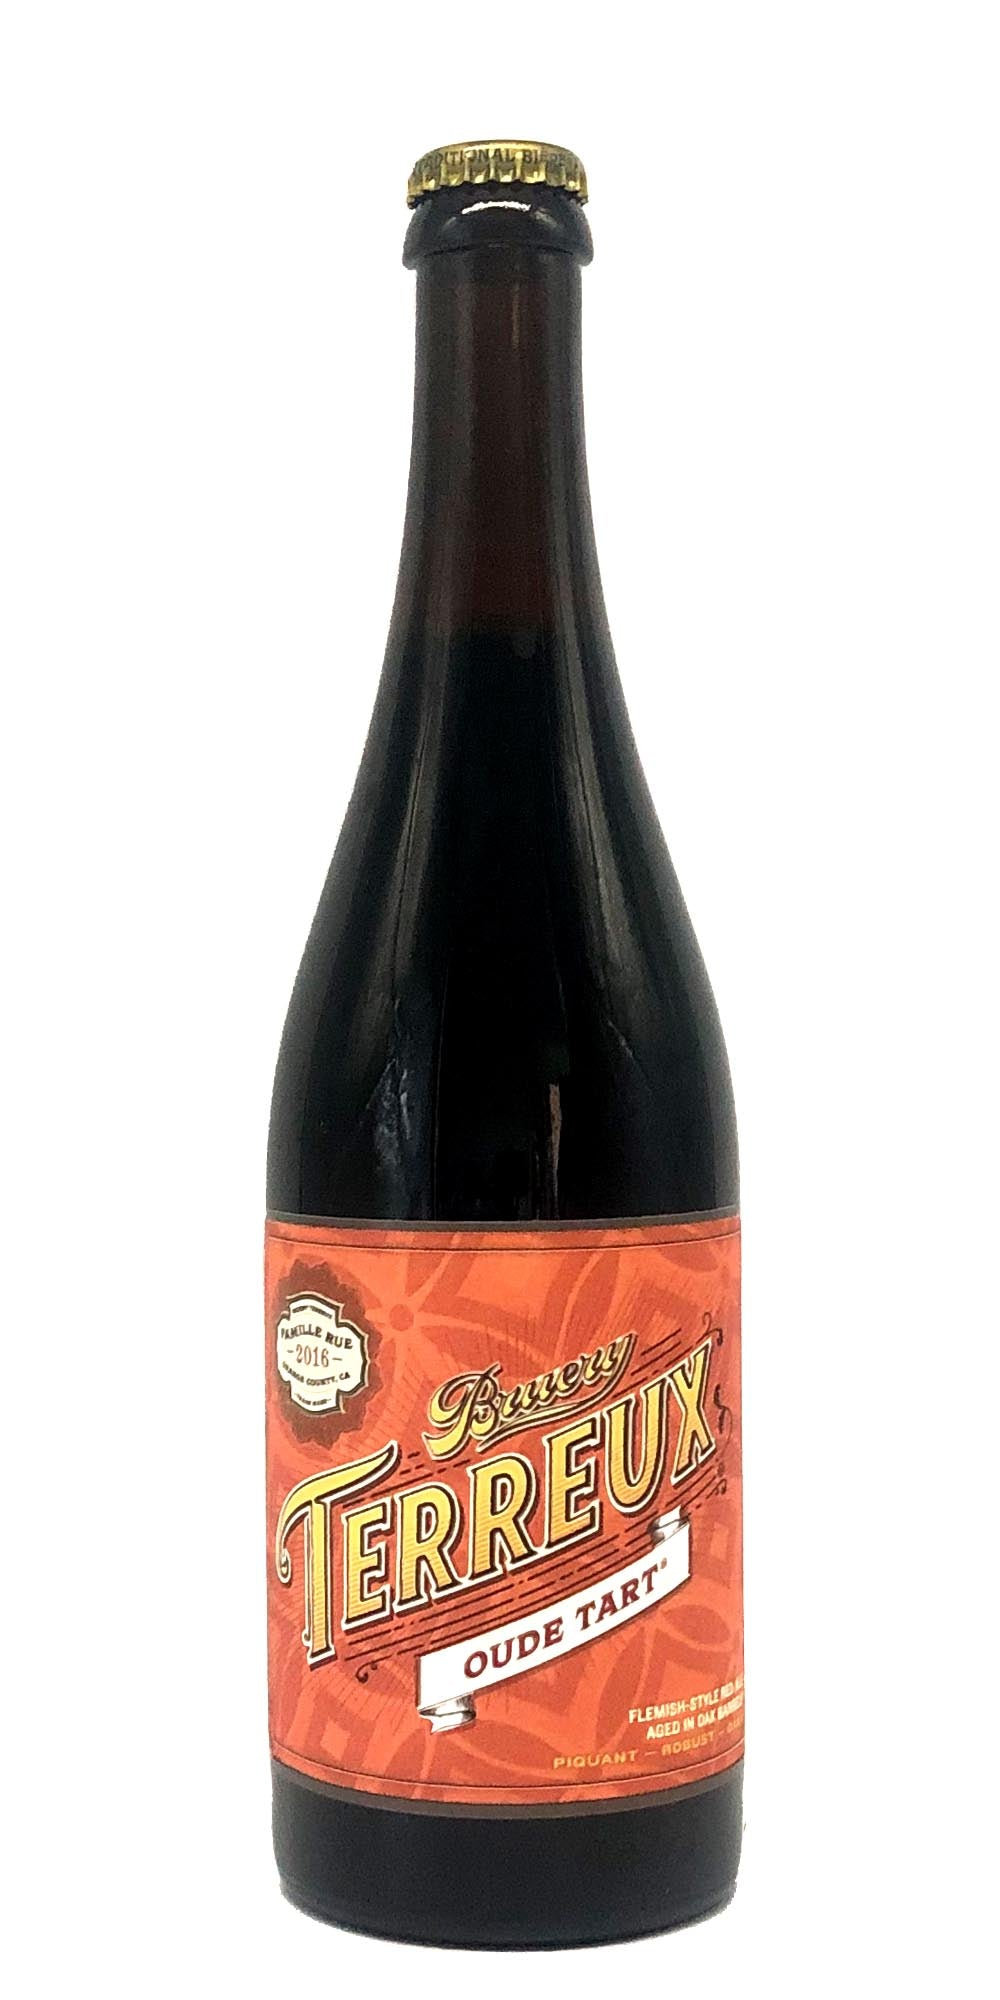 The Bruery - Oude Tart - Drikbeer - Order Craft Beer Online